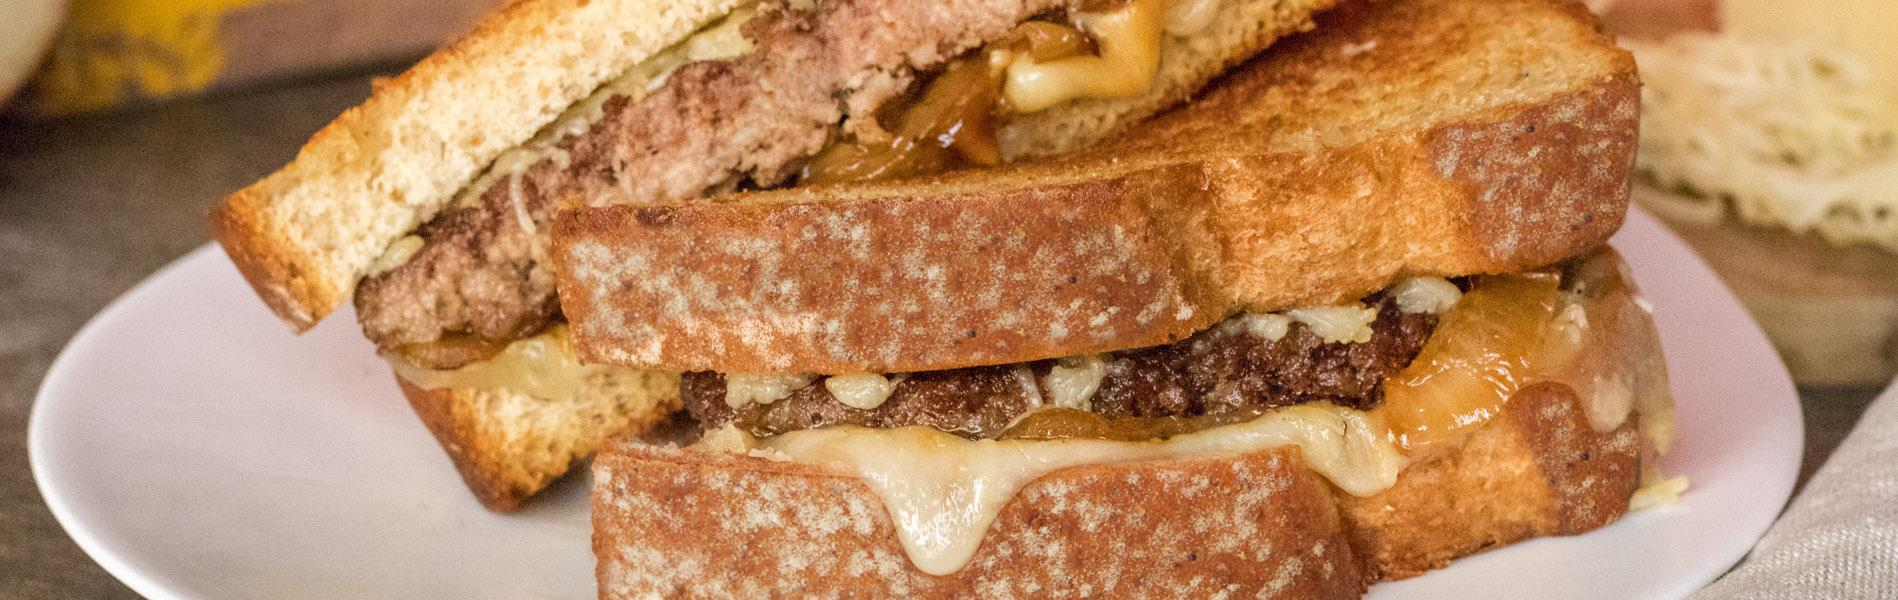 Caramelized Onion Grilled Cheese Burger by Katie Lee